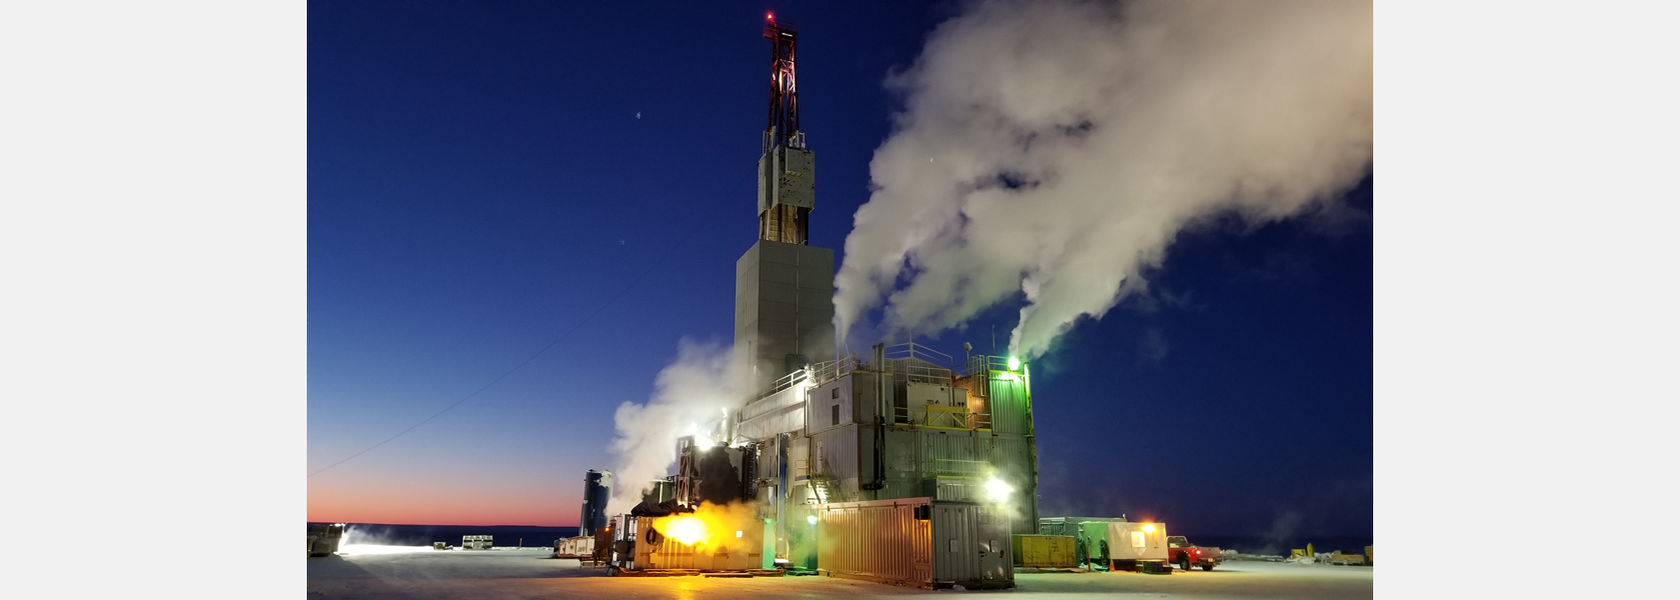 88 Energy on the Verge of Company Making Drilling History in Alaska